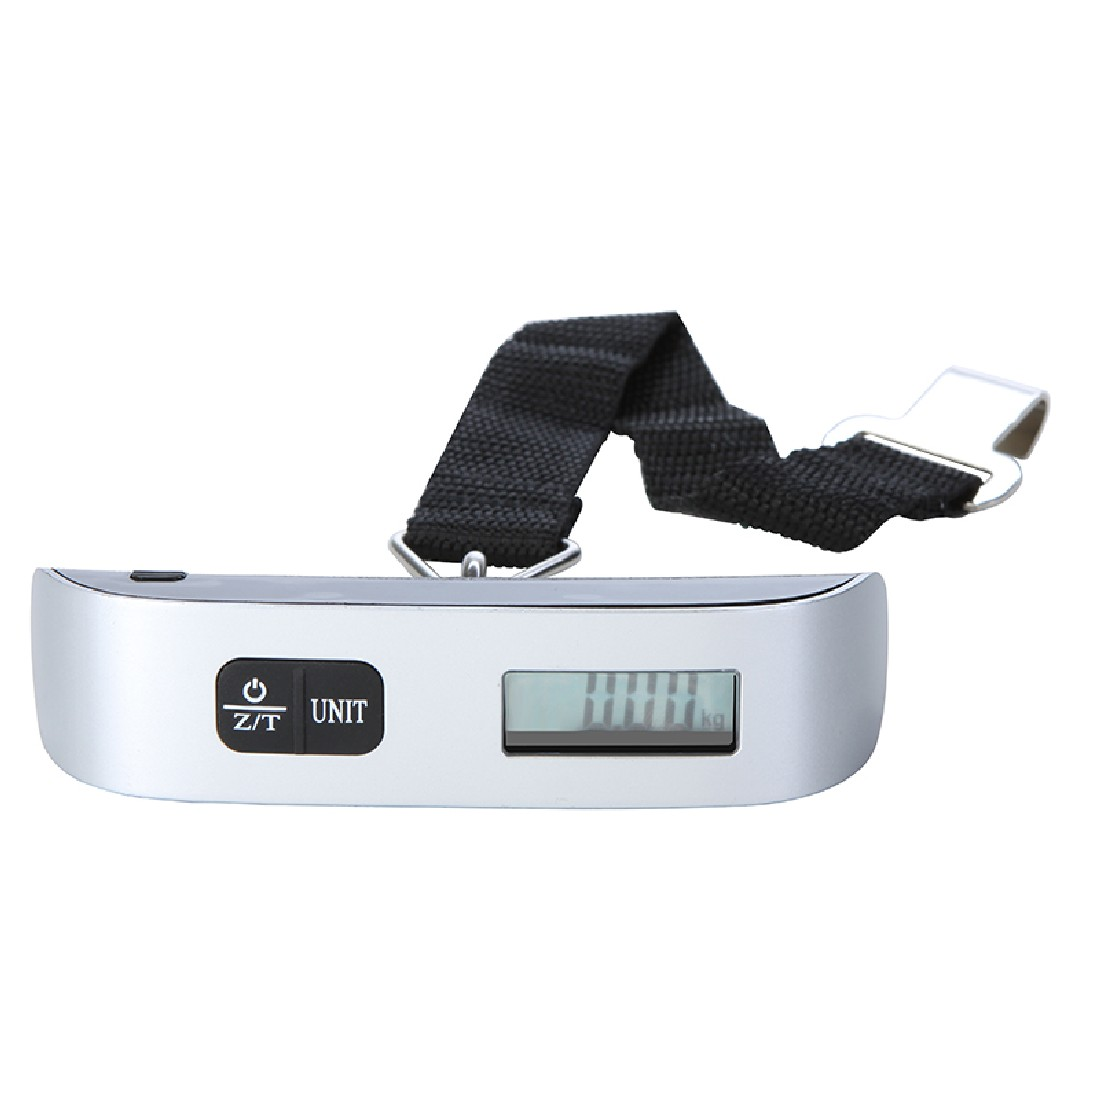 Hand Held 50kg/110lb Hook Belt Scale LCD Digital Electronic Scale For Travel Suitcase Luggage Hanging Scales Weighing 10x electronic portable digital luggage scale handheld travel suitcase weighing 50kg toogoo r